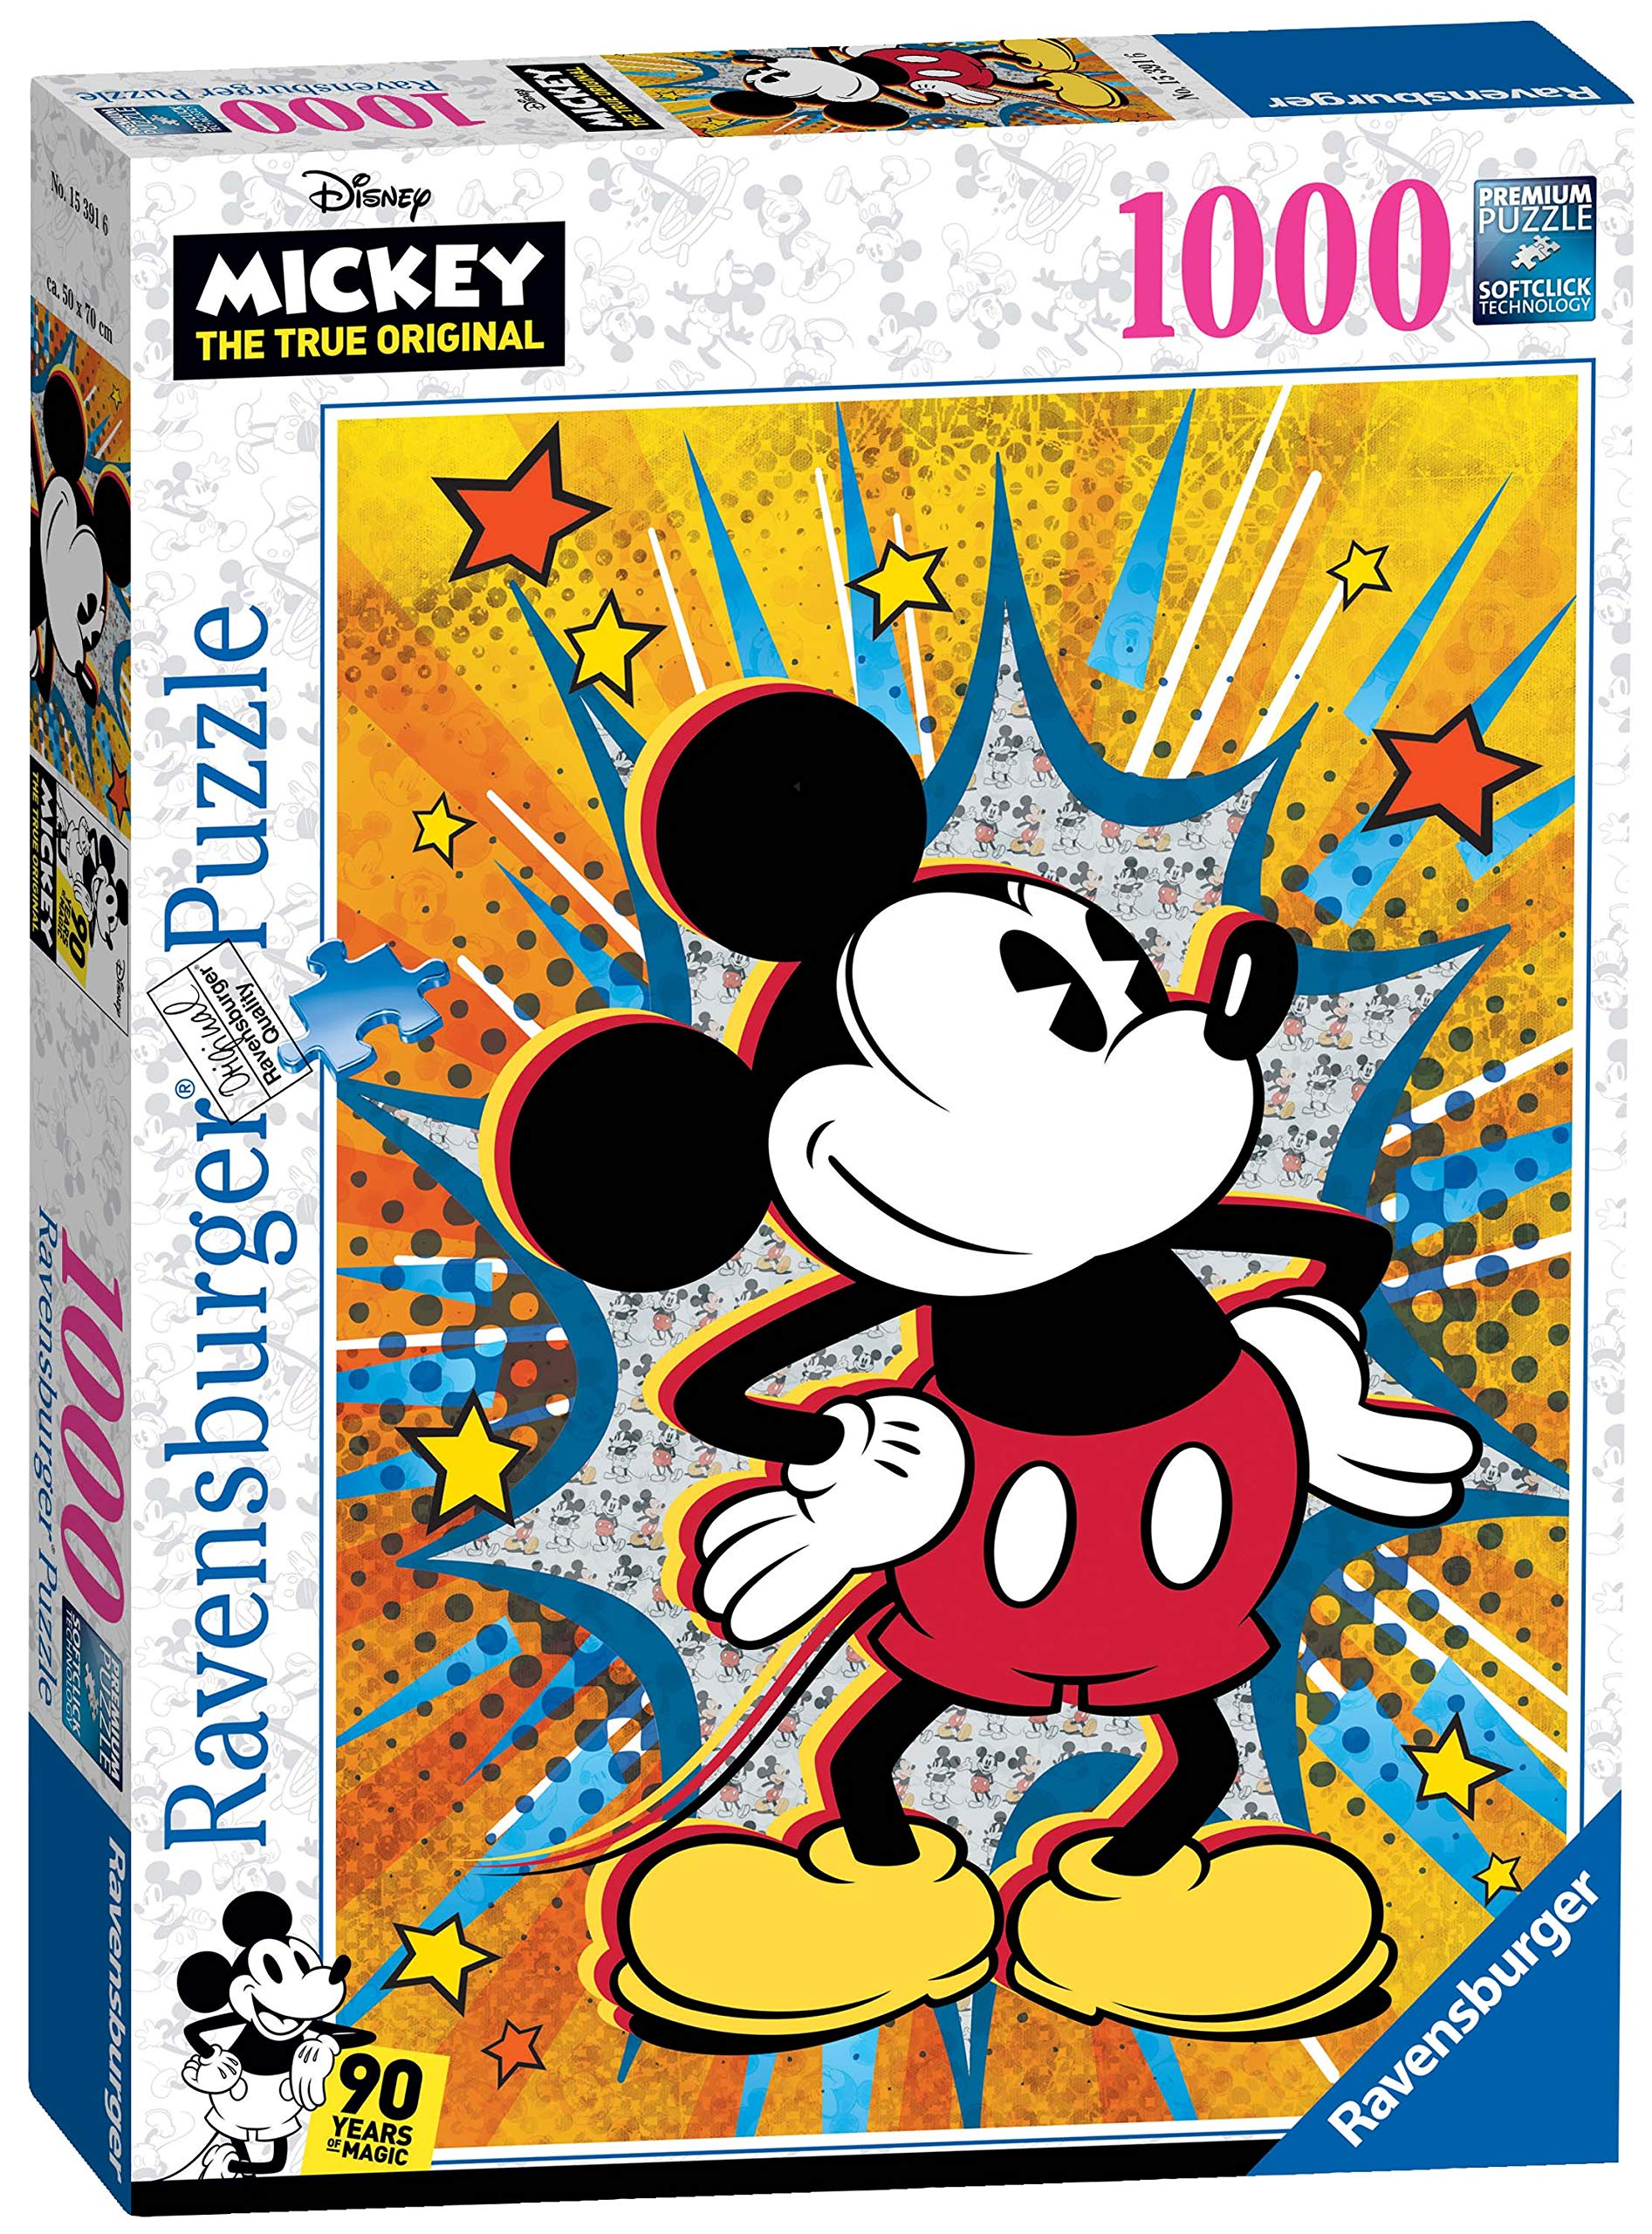 Softclick Technology Means Pieces Fit Together Perfectly Ravensburger 19675 Disney Fantasia Collectors Edition 1000 Piece Puzzle for Adults Every Piece is Unique